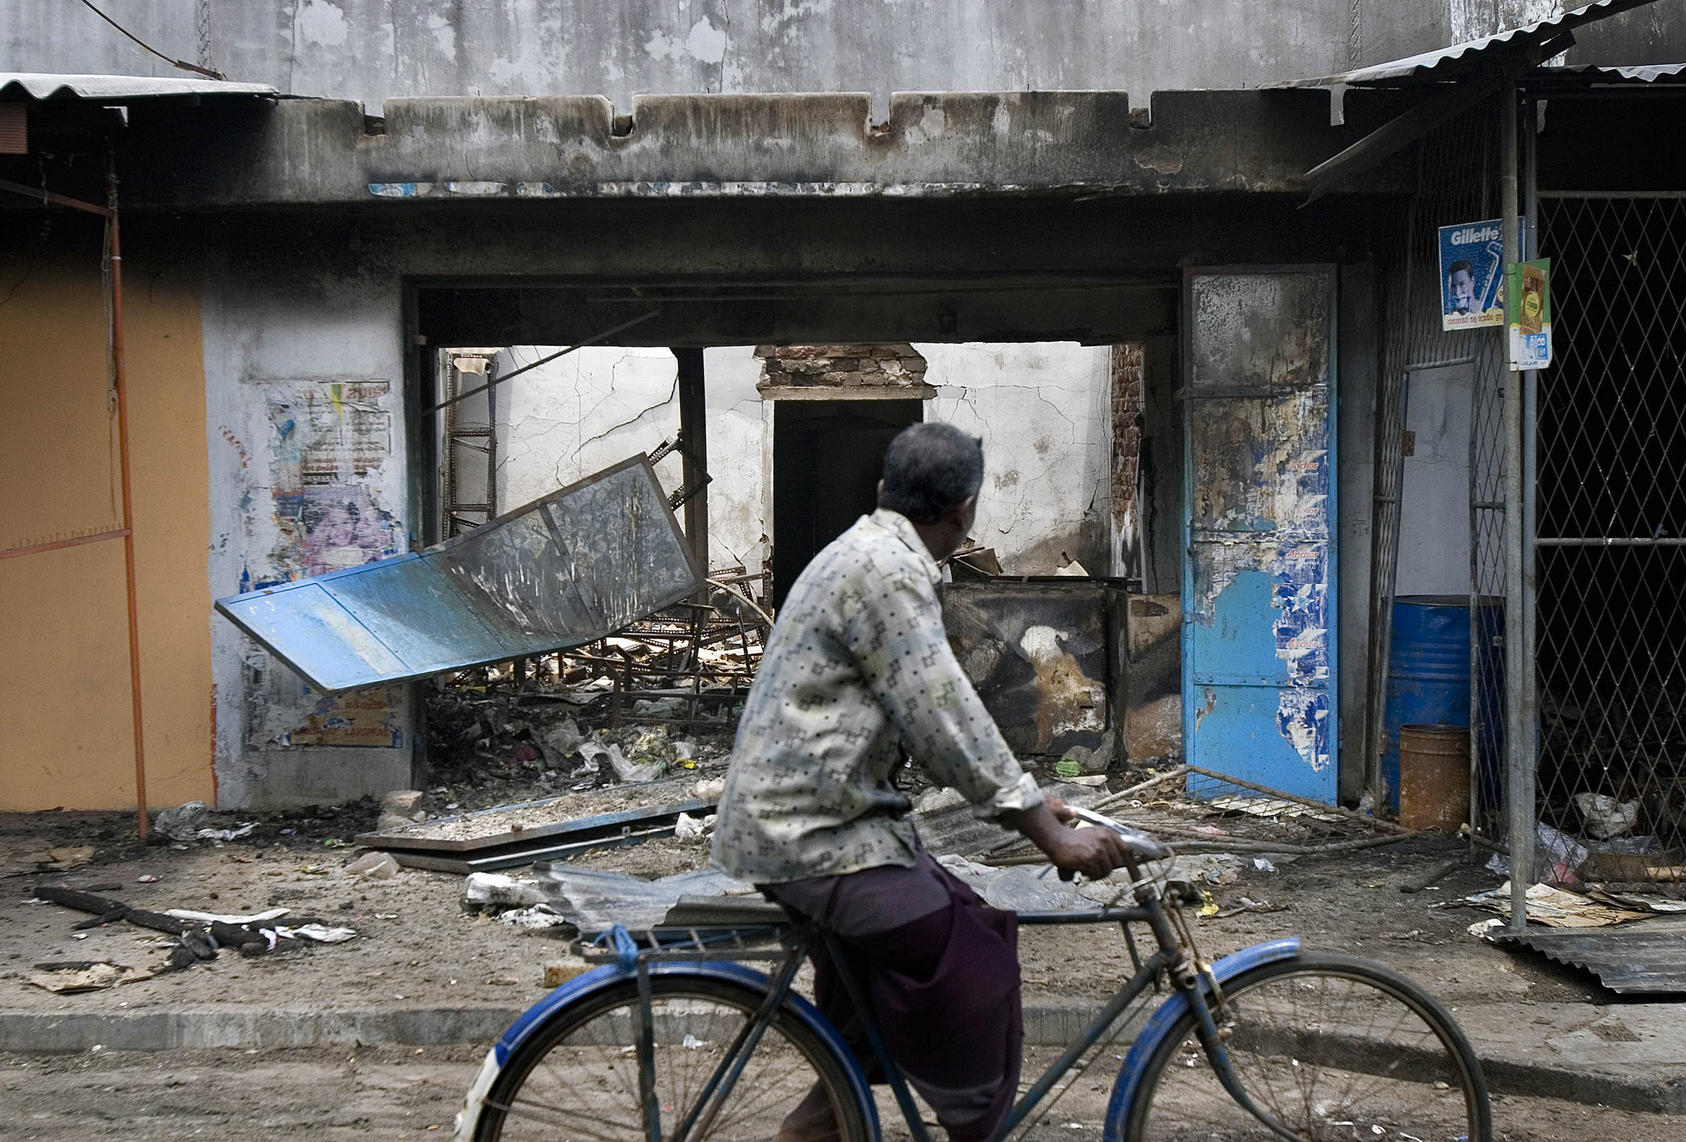 A man bicycles on May 7th, 2006, past Tamil-owned stores that were set ablaze by a Sinhalese mob in Trincomalee, Sri Lanka. April was the bloodiest month since the government and the separatist Liberation Tigers of Tamil Eelam signed a cease-fire in February 2002 that was supposed to end nearly two decades of killing here.